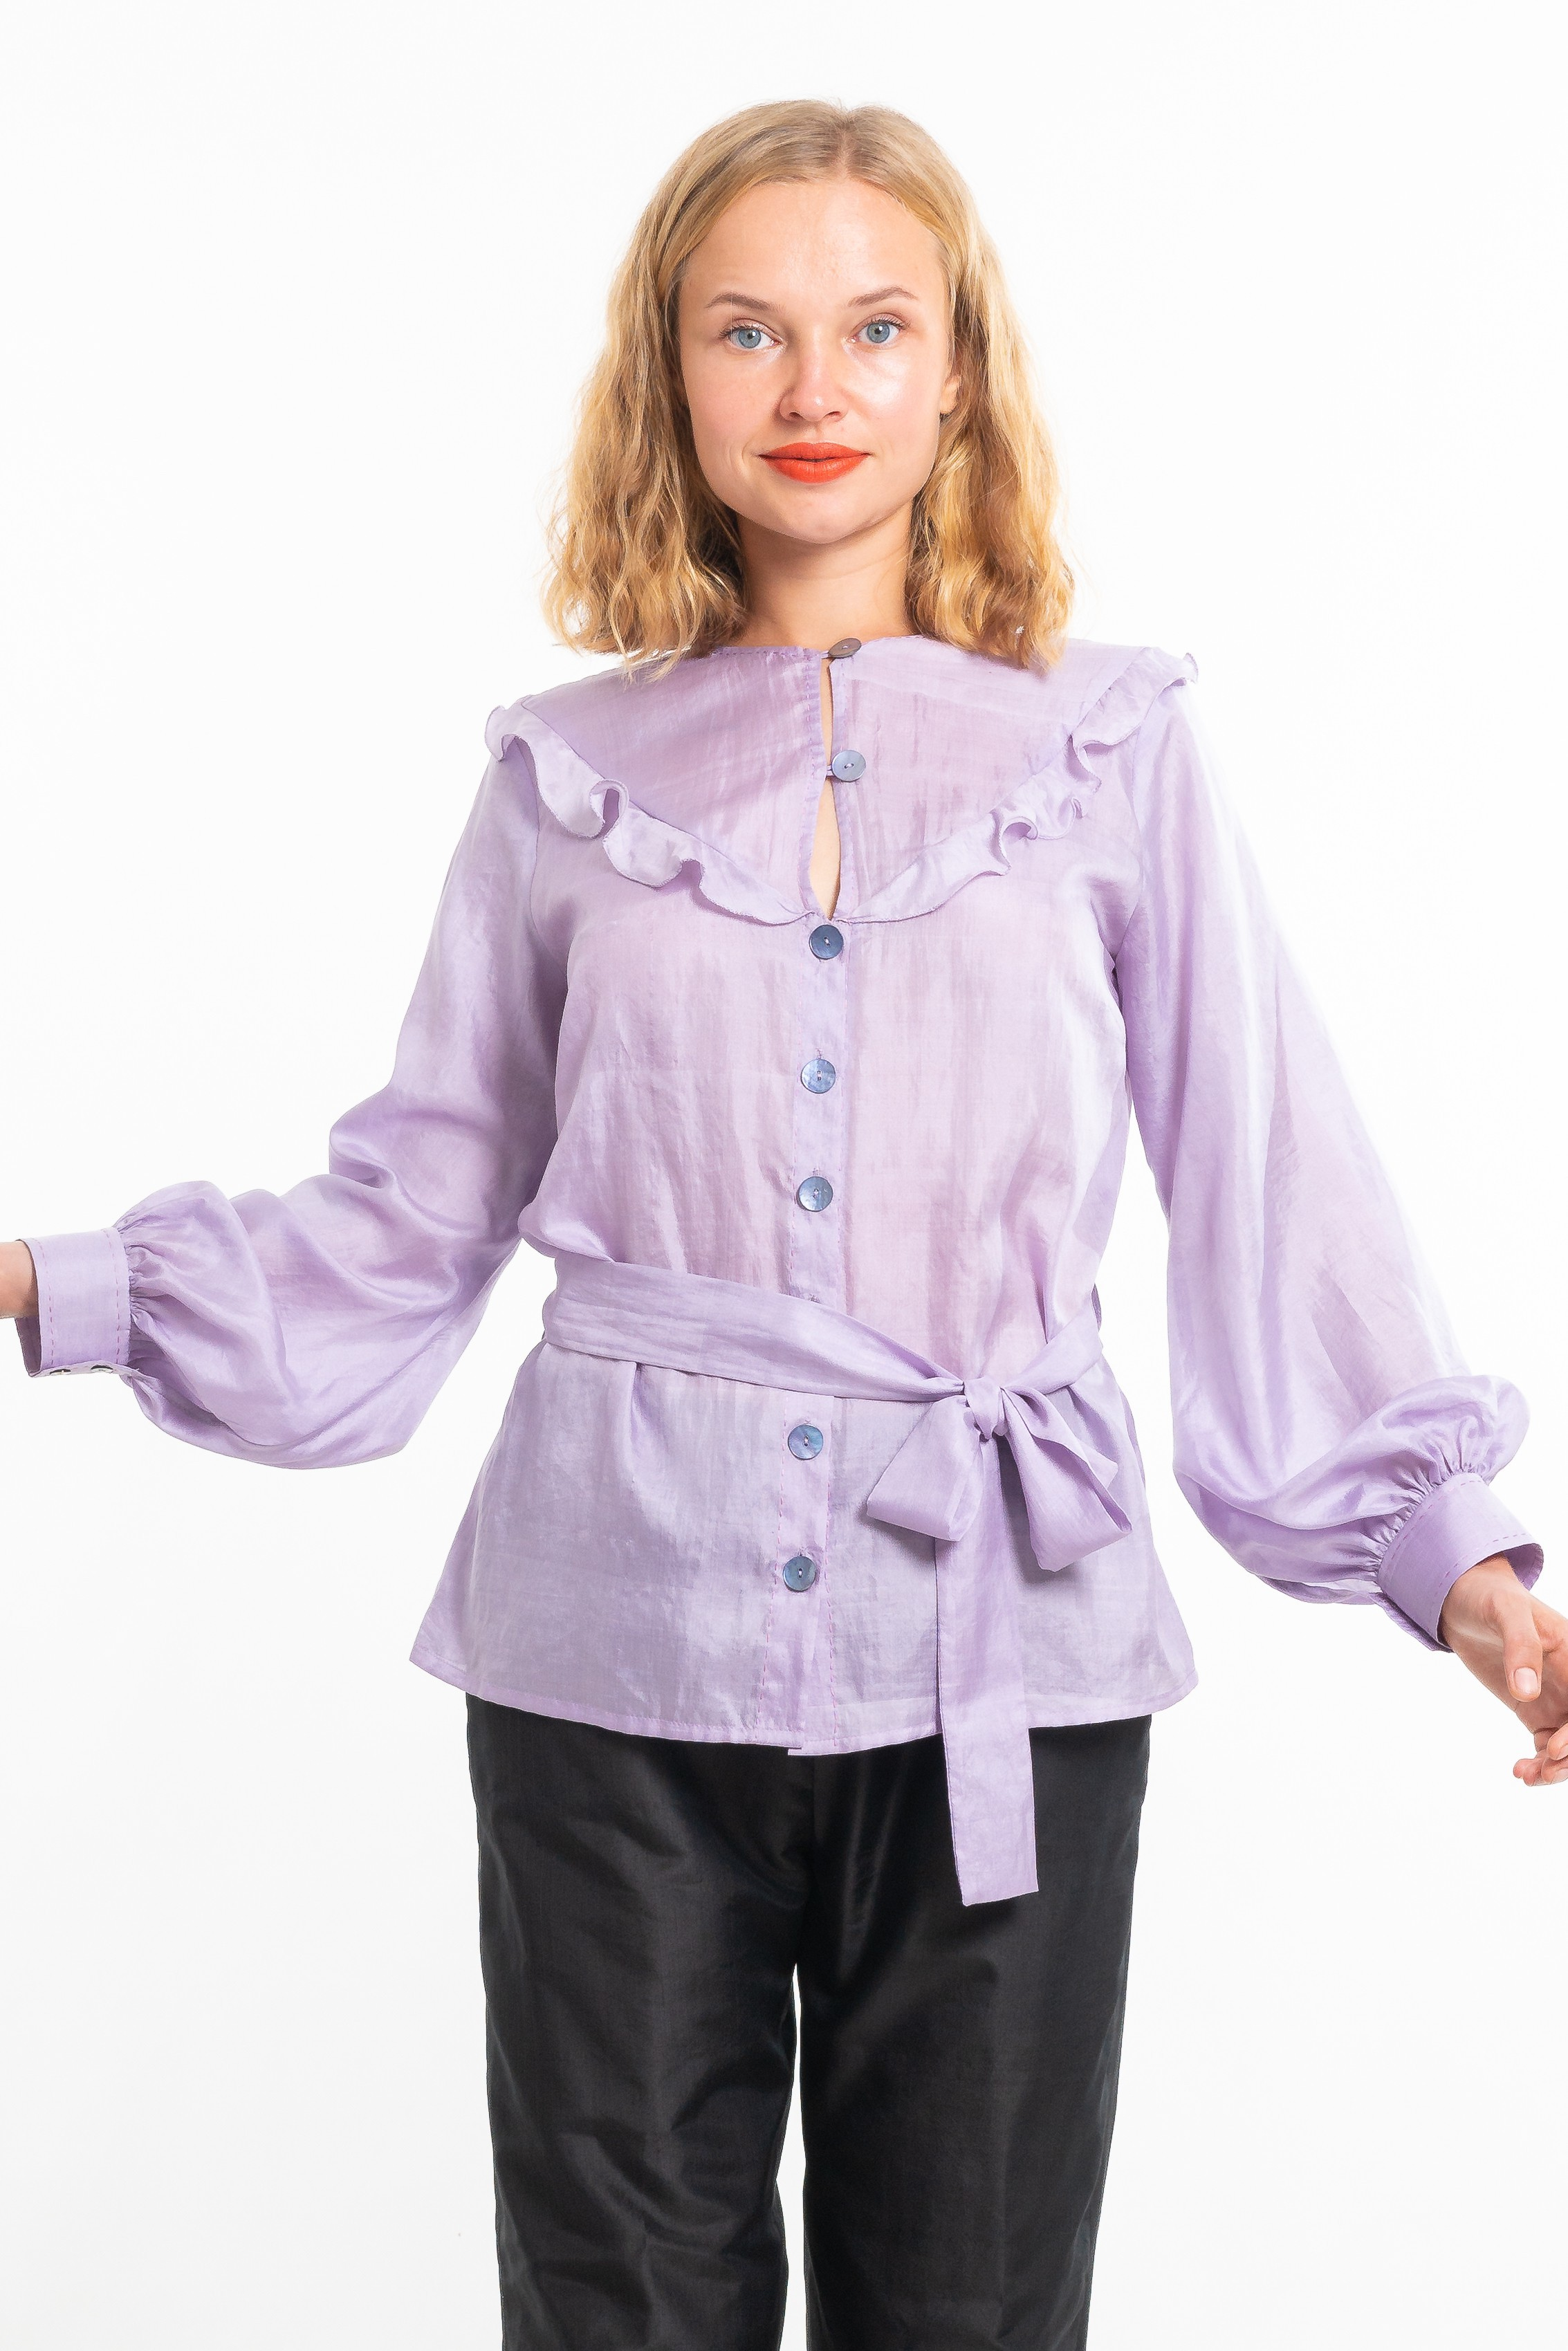 purple silk blouse, round neckline, airy flounces, handmade saddle stitching, puffed sleeves, belt tied on the side, front